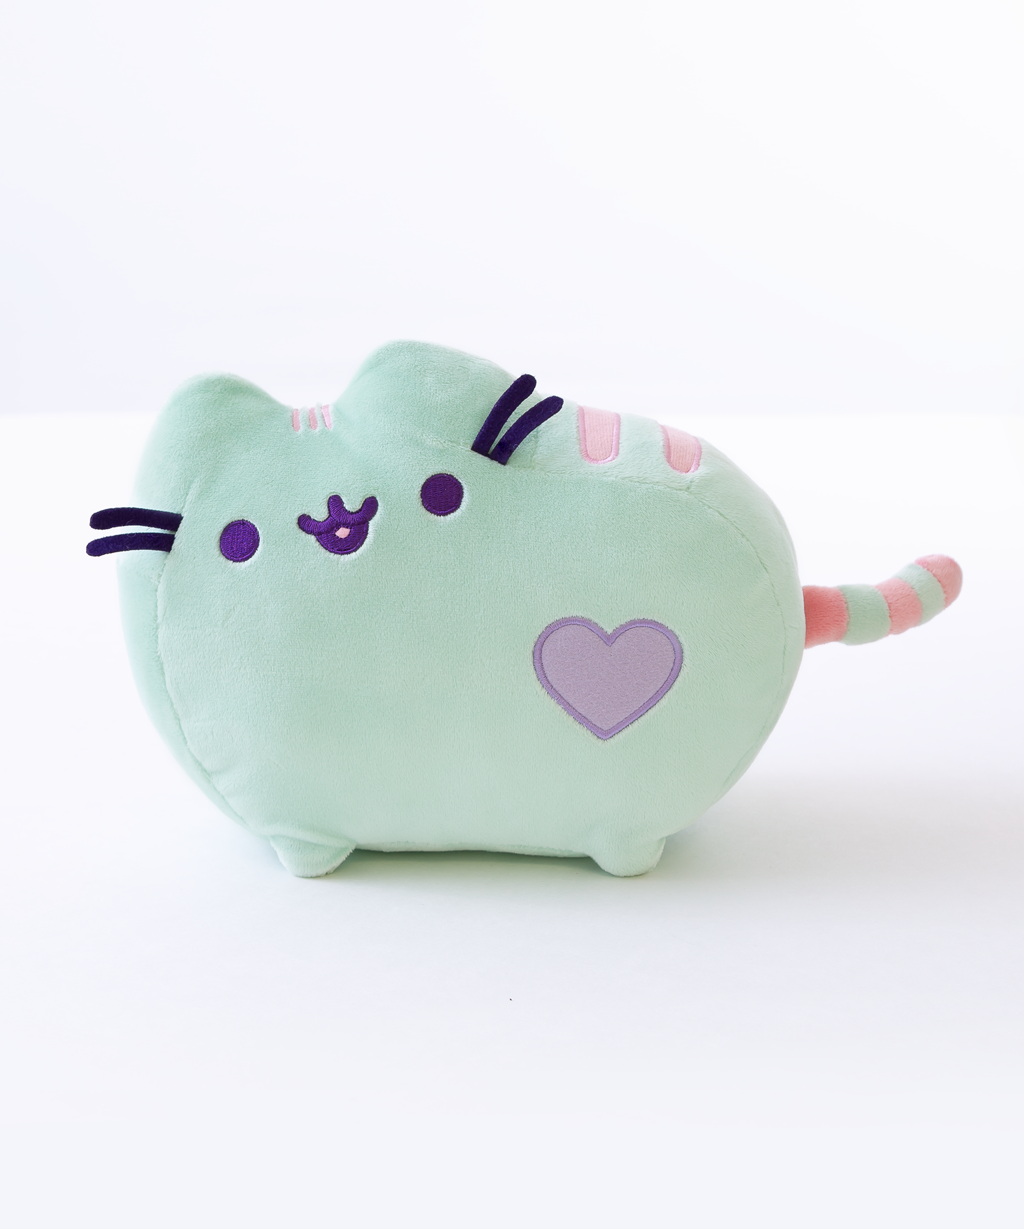 Pastel Pusheen Plush Toy in Mint